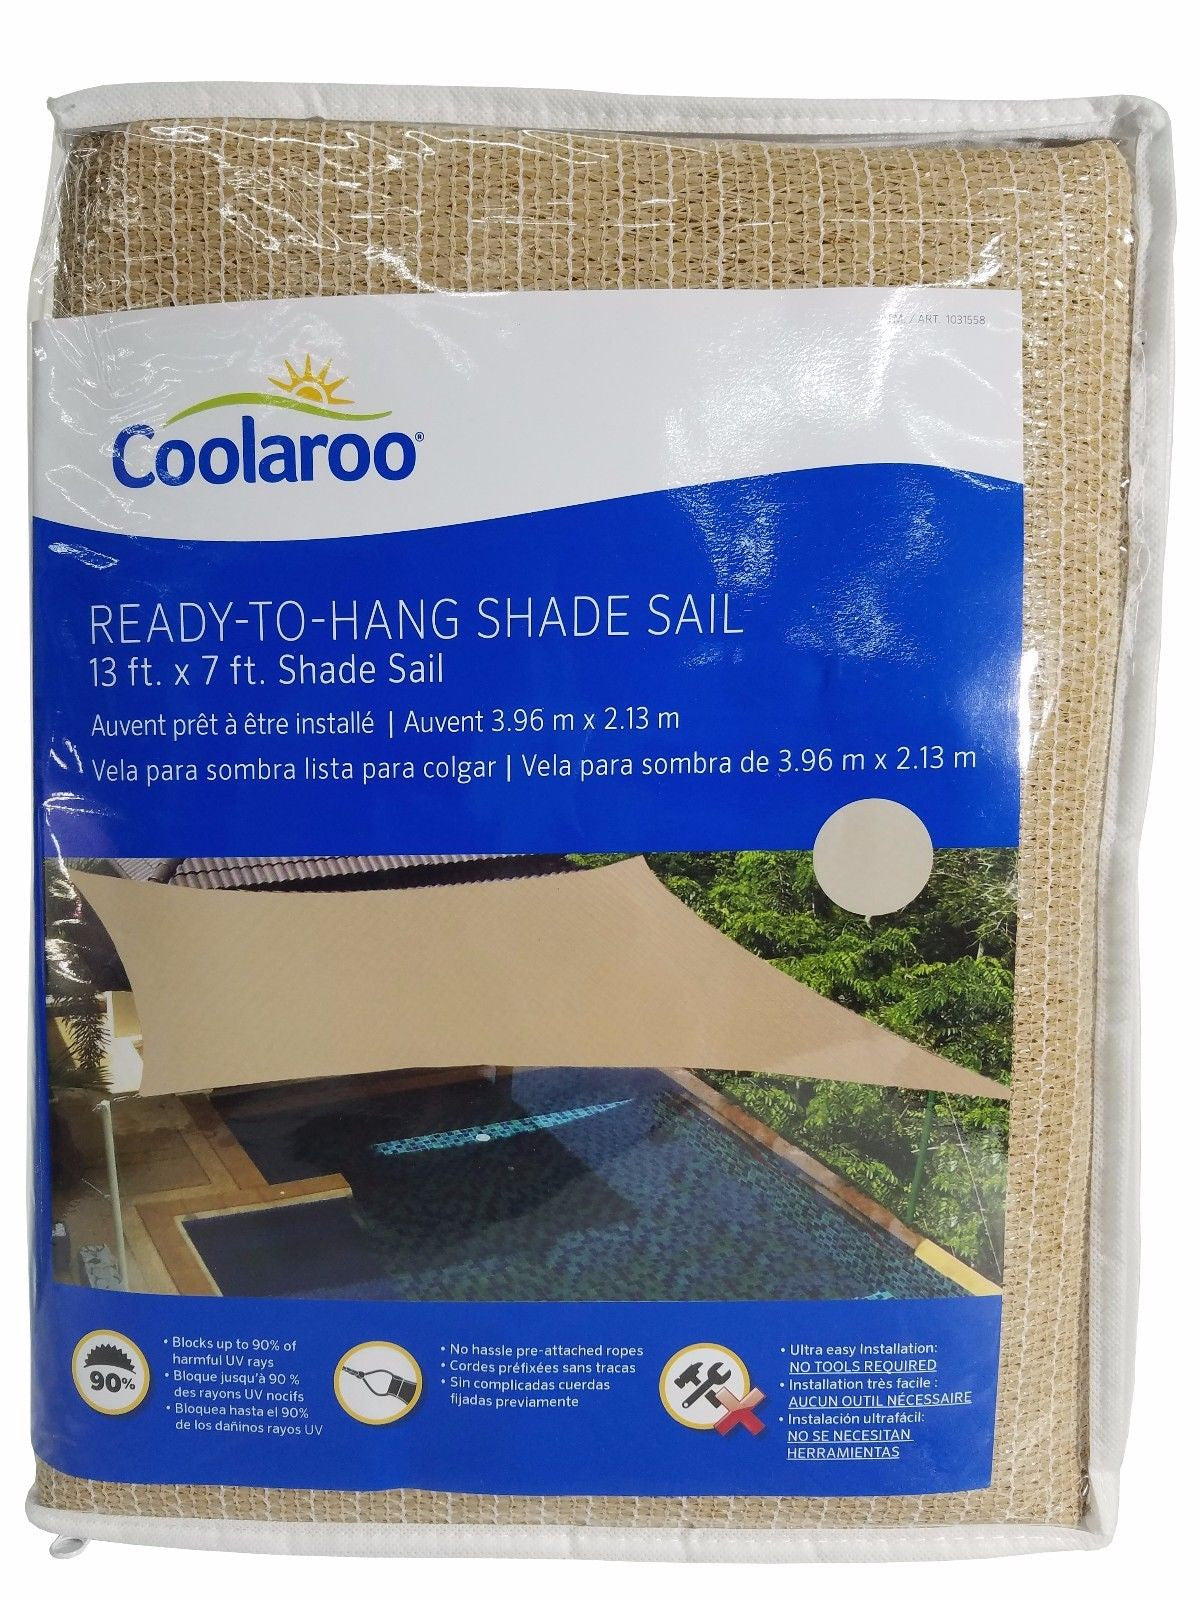 Coolaroo Ready To Hang Shade Sail with Ropes 13x7 ft - Desert Sand